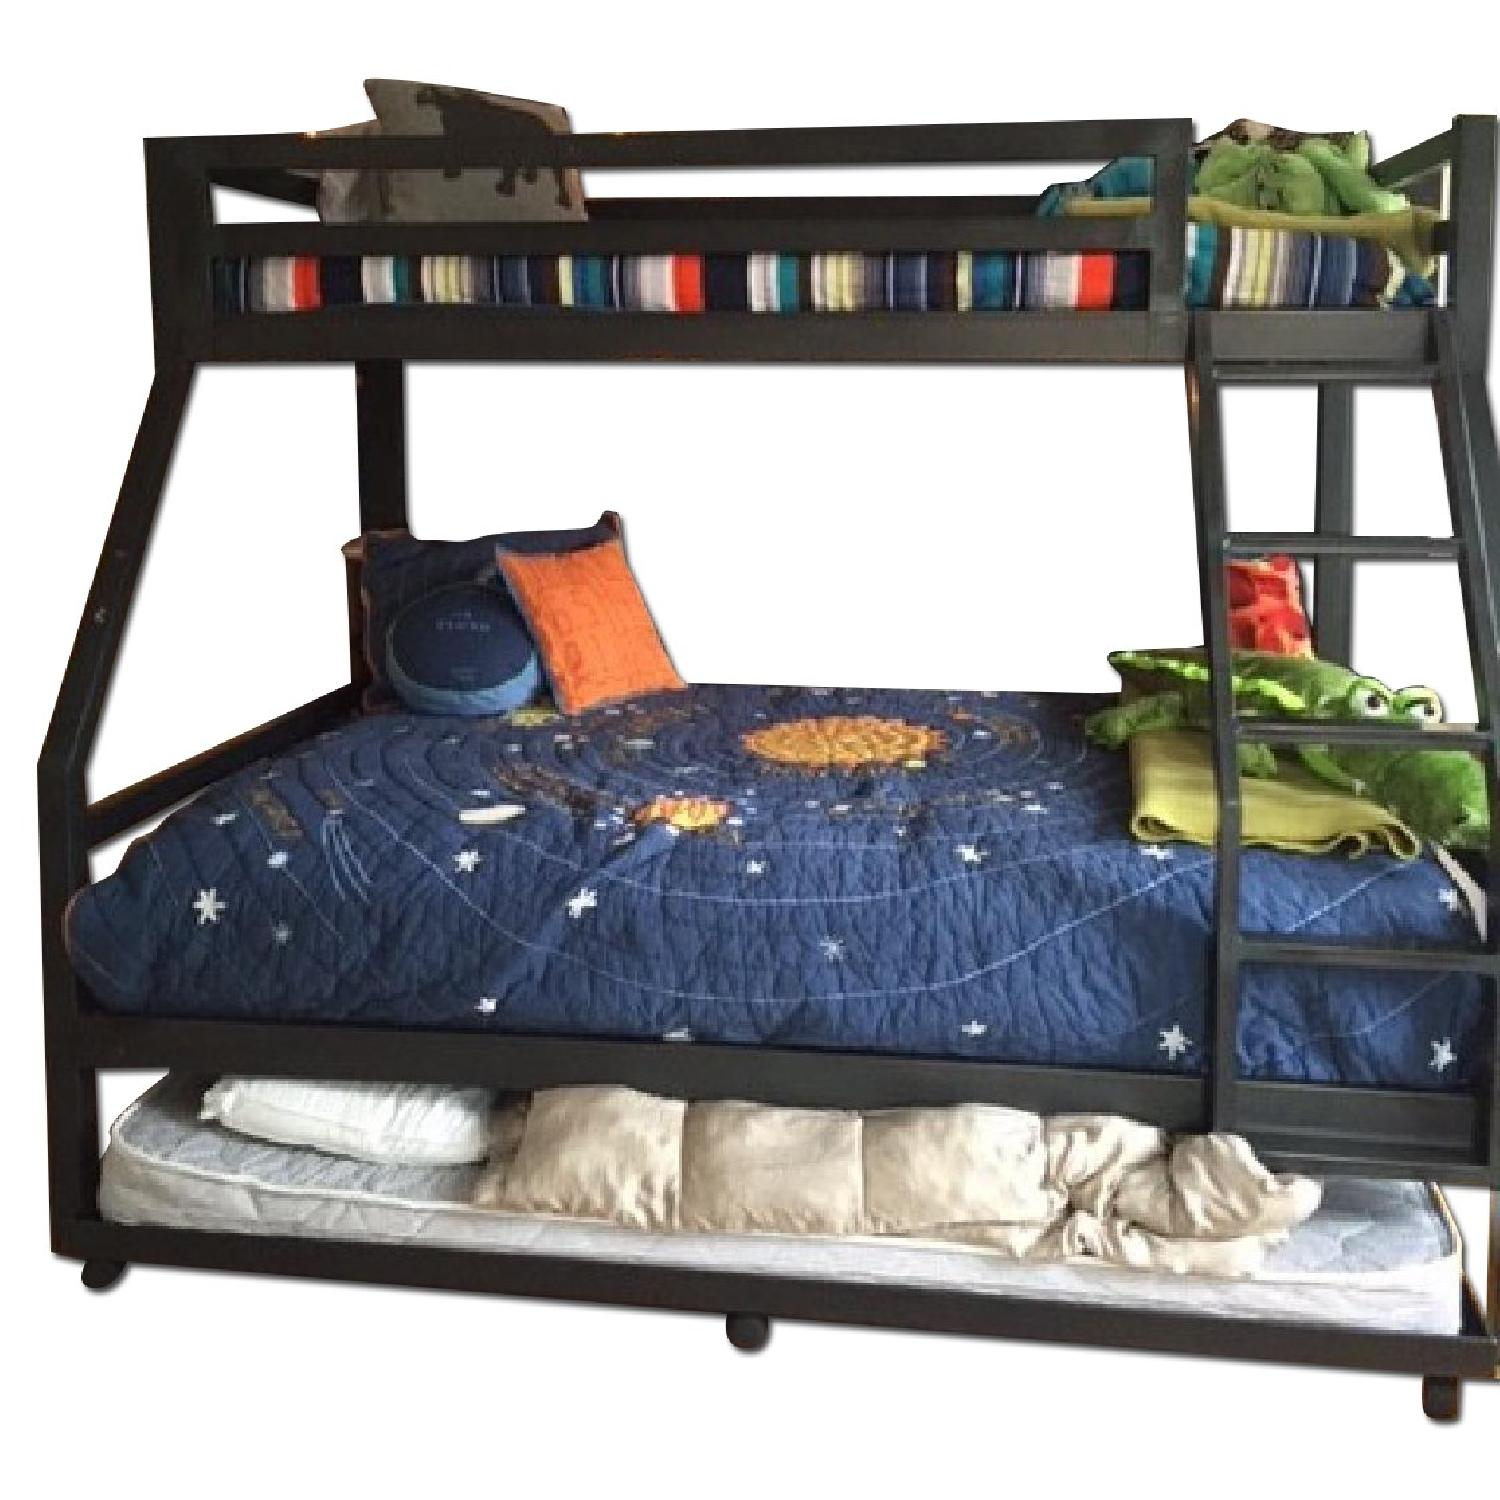 Room & Board Bunk Beds w/ Trundle - image-0